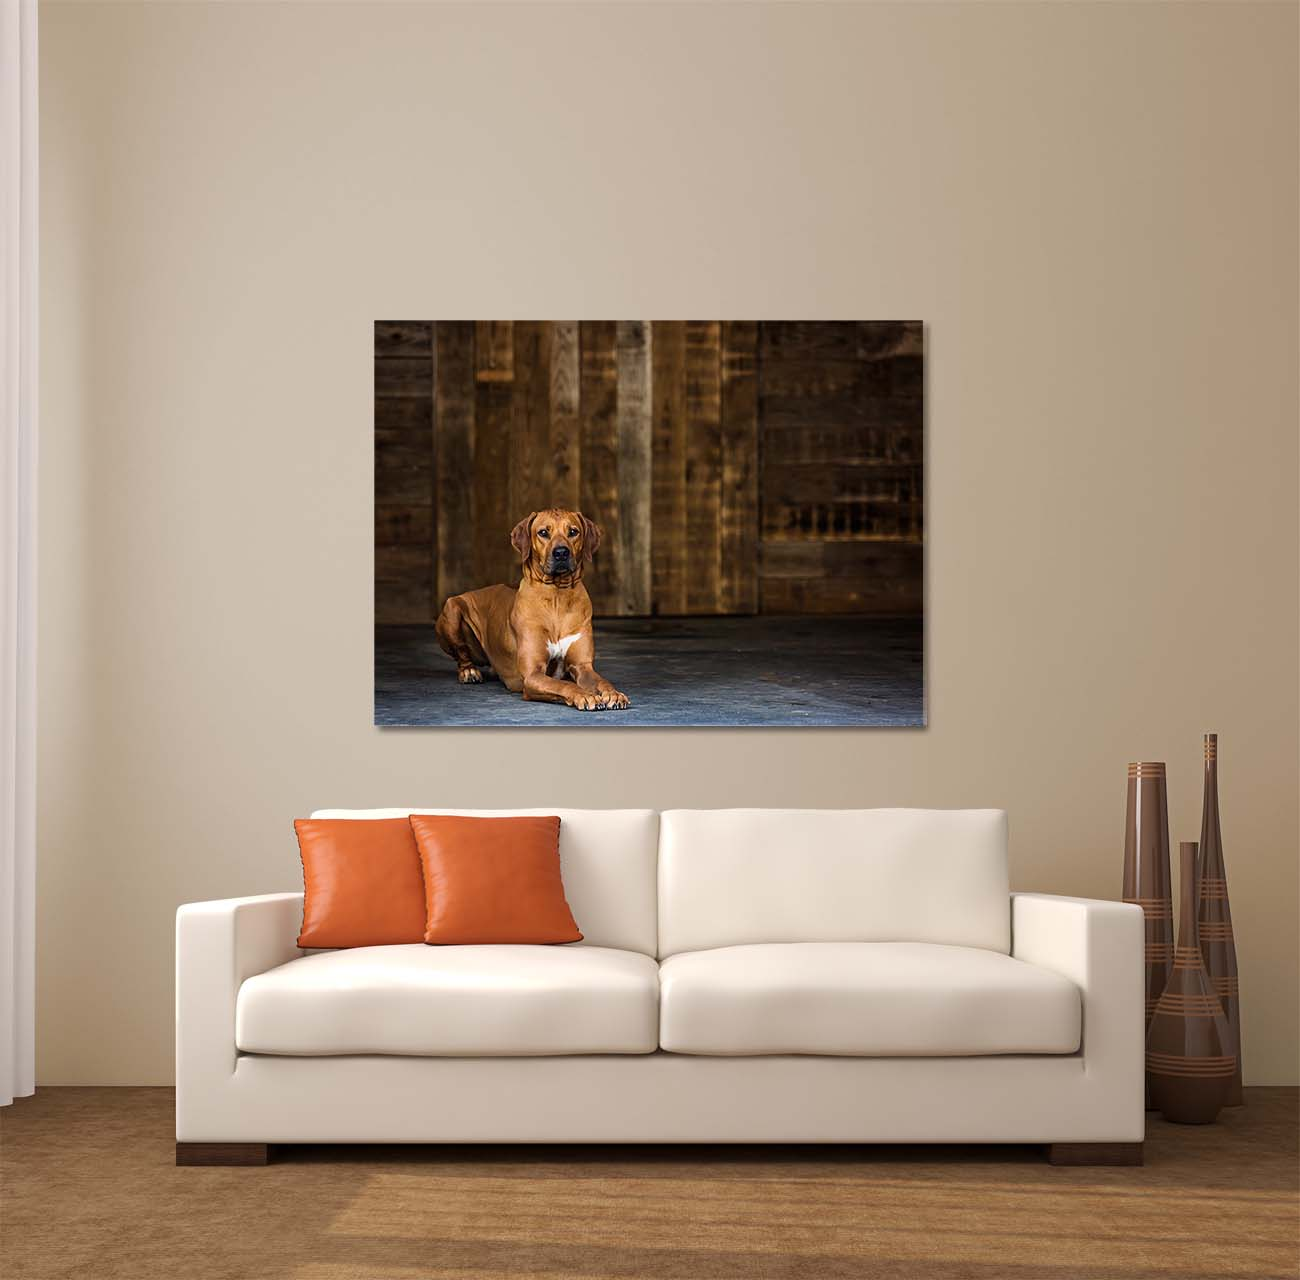 Framed Print of Rhodesian Ridgeback Dog over Couch